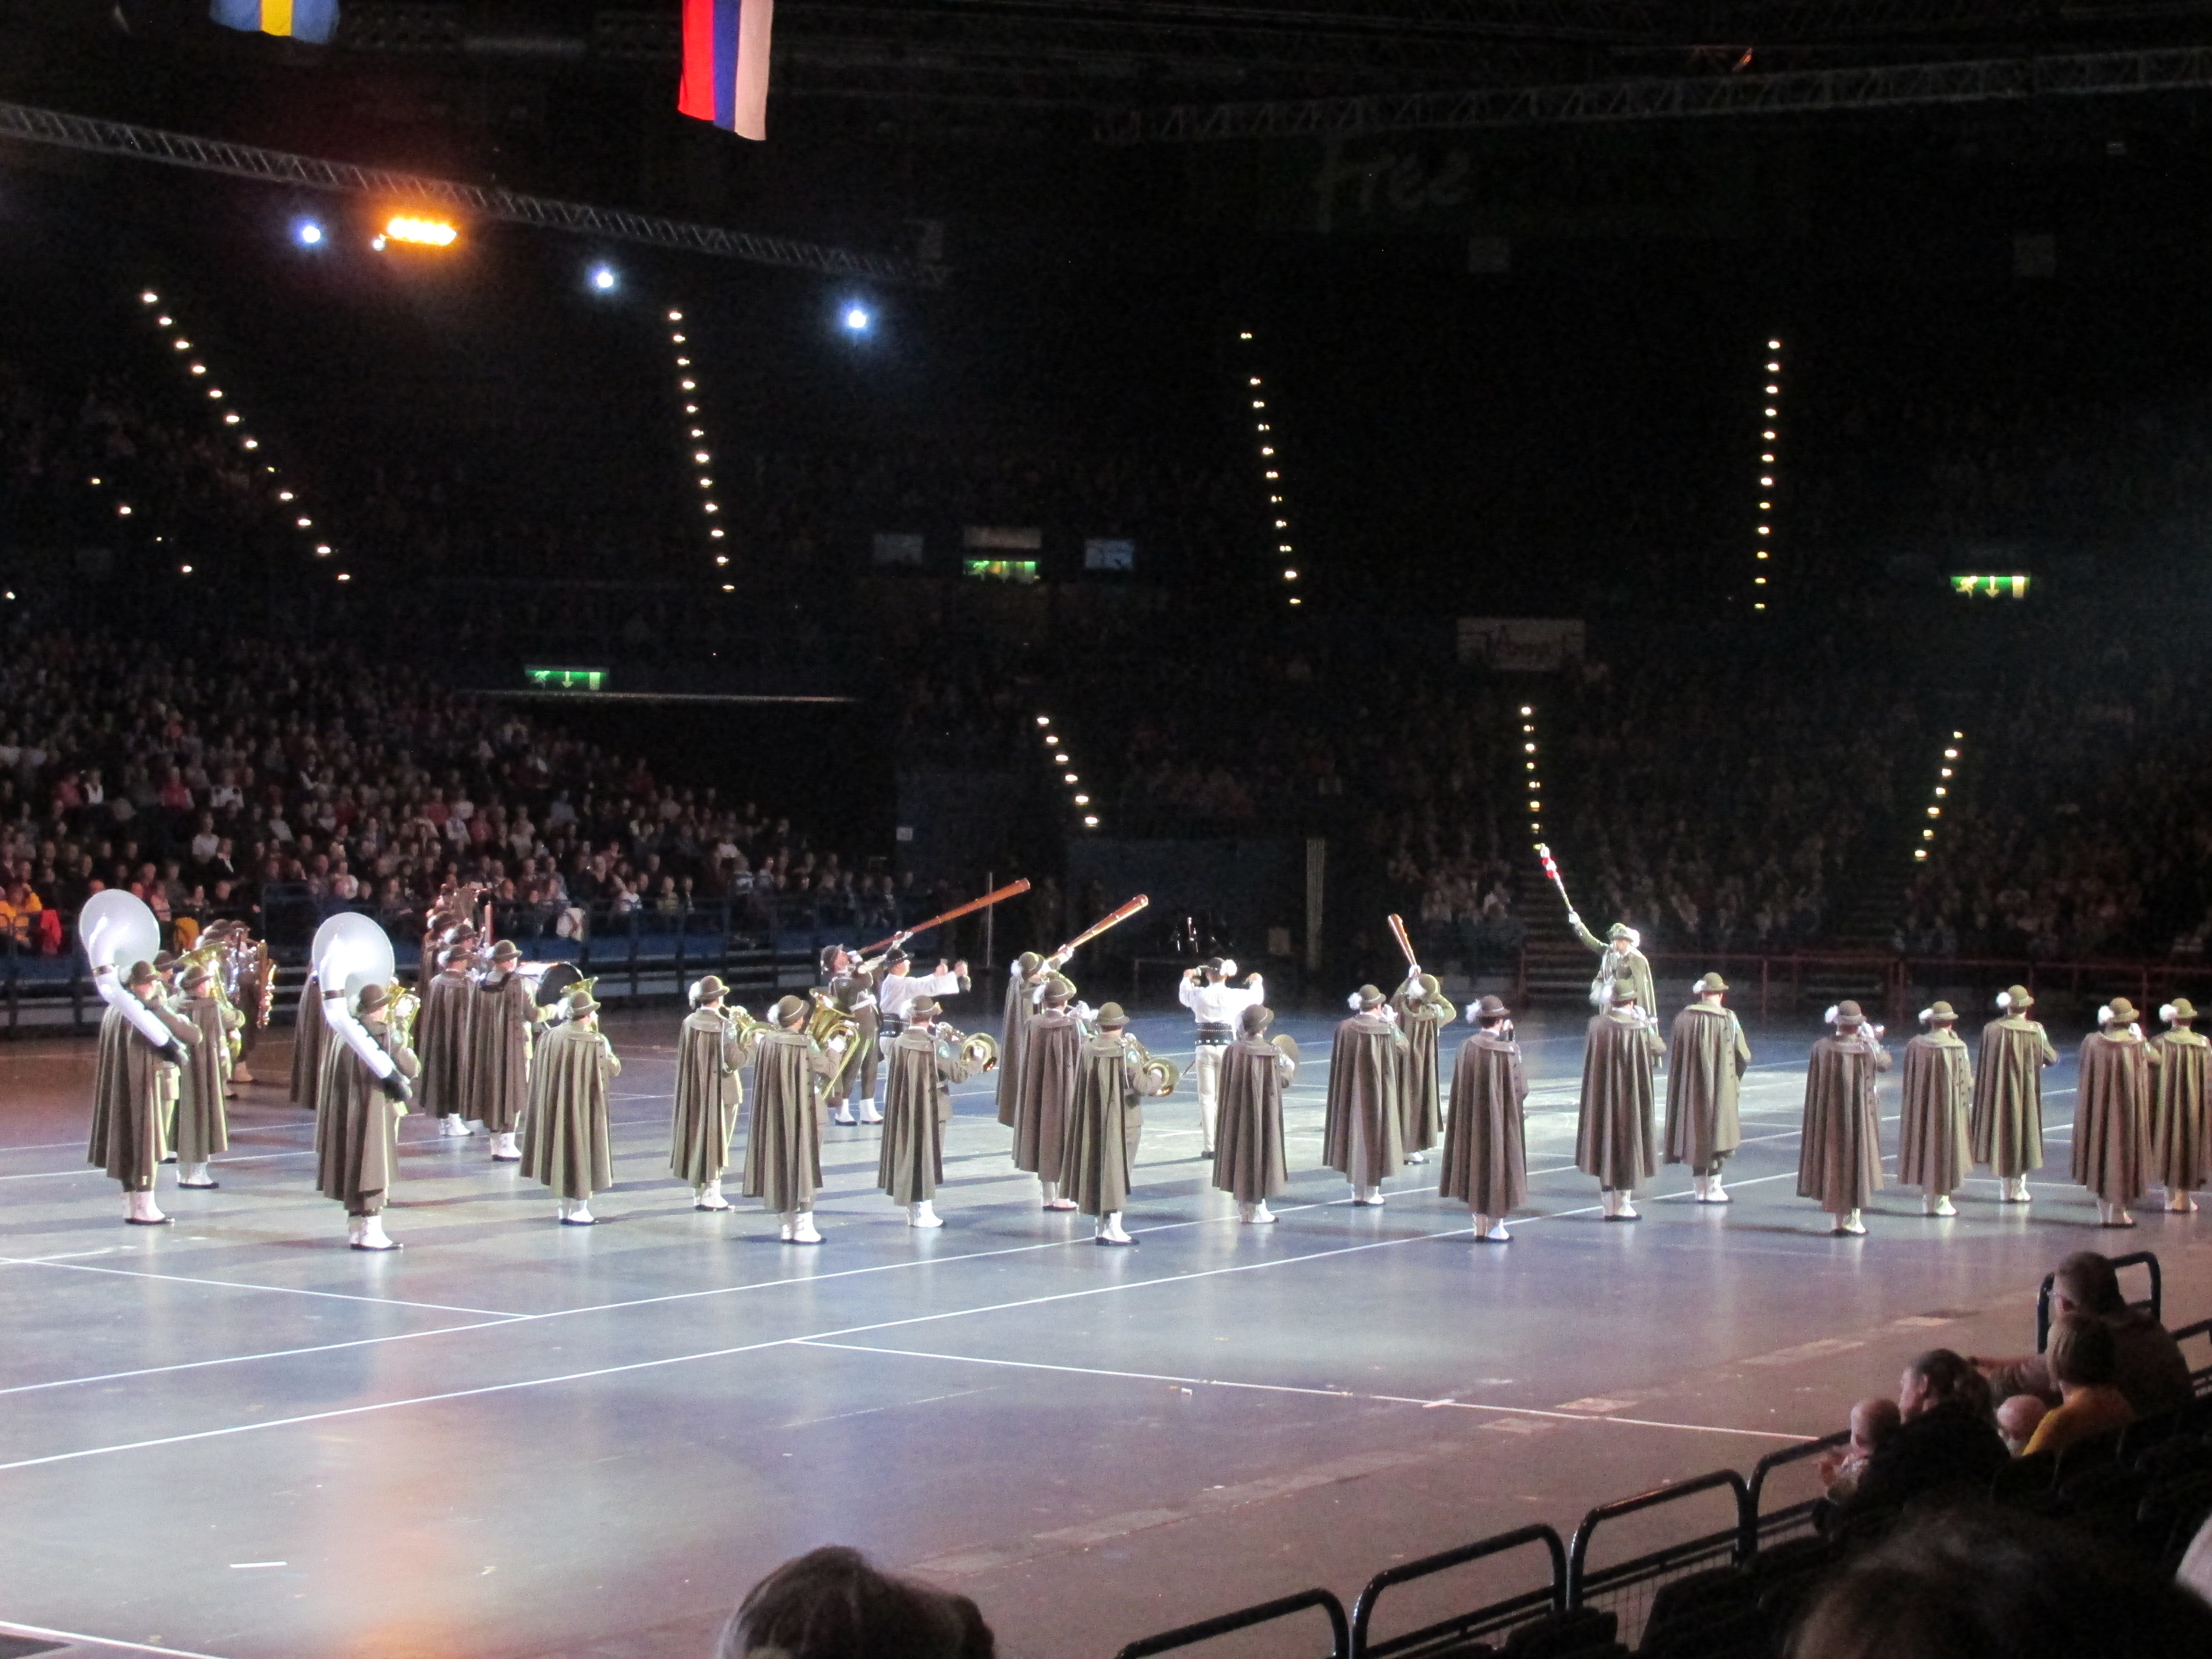 The Polish Border Guard Band